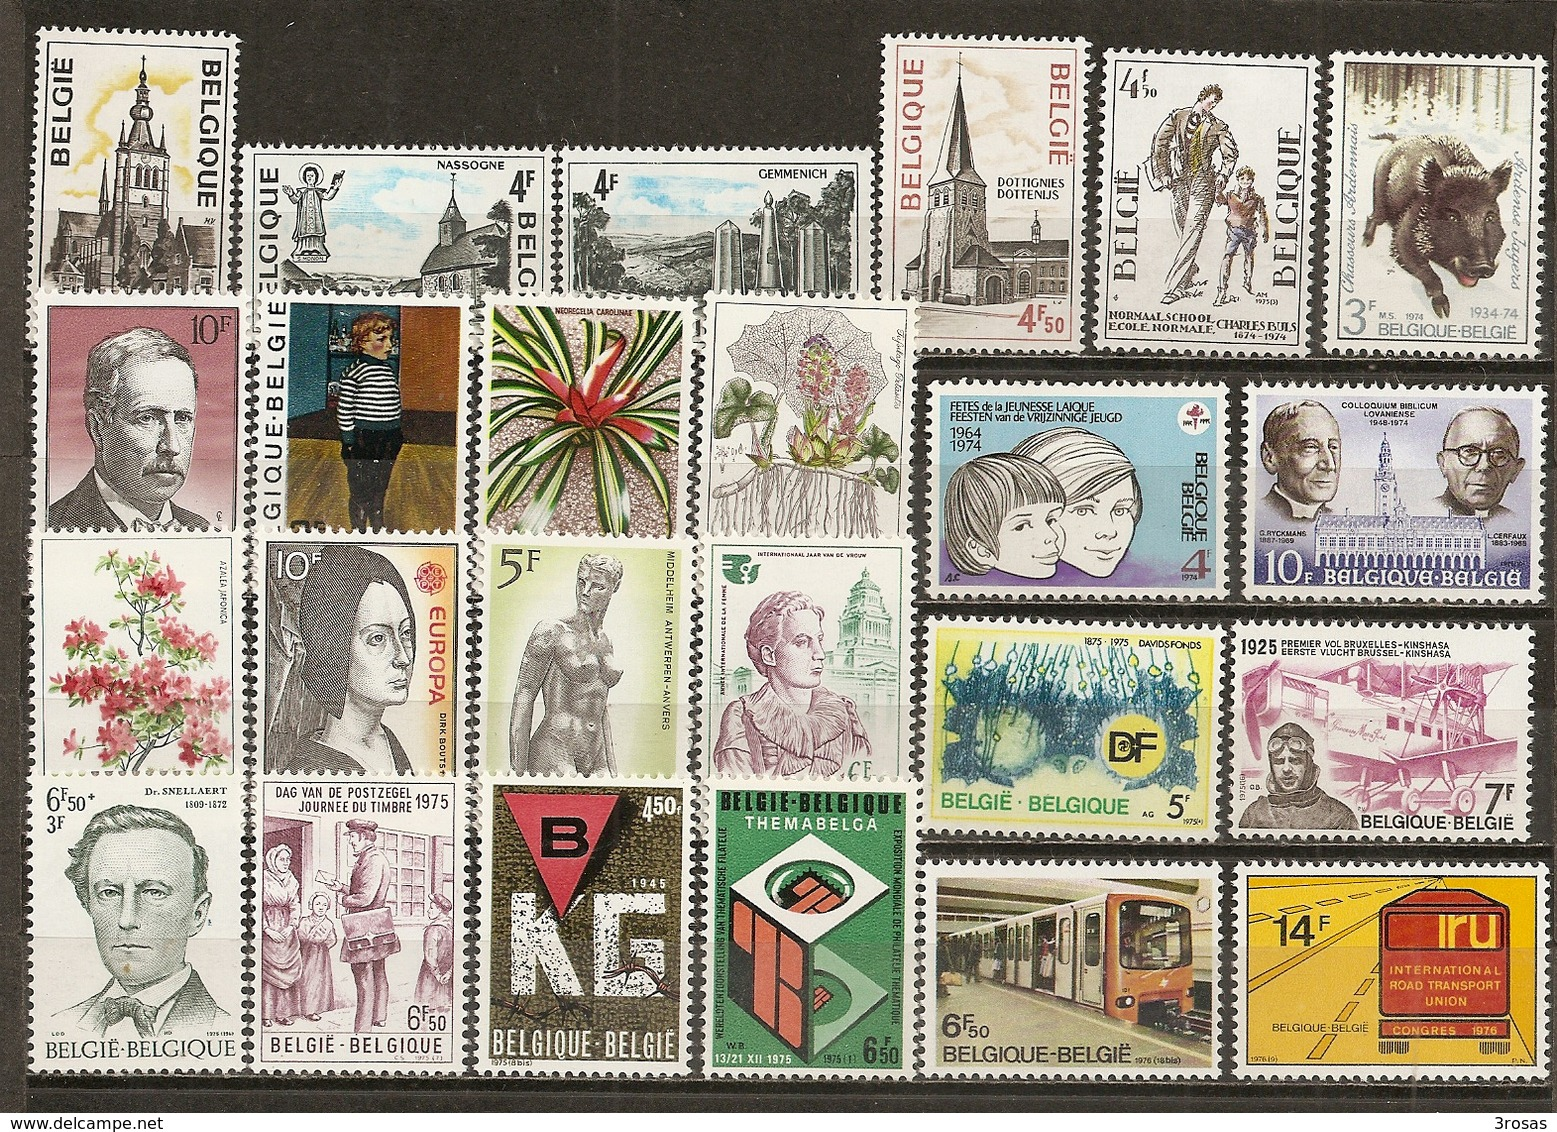 Belgique Belgium Collection Mostly Unmounted Mint With Complete Sets - Stamps